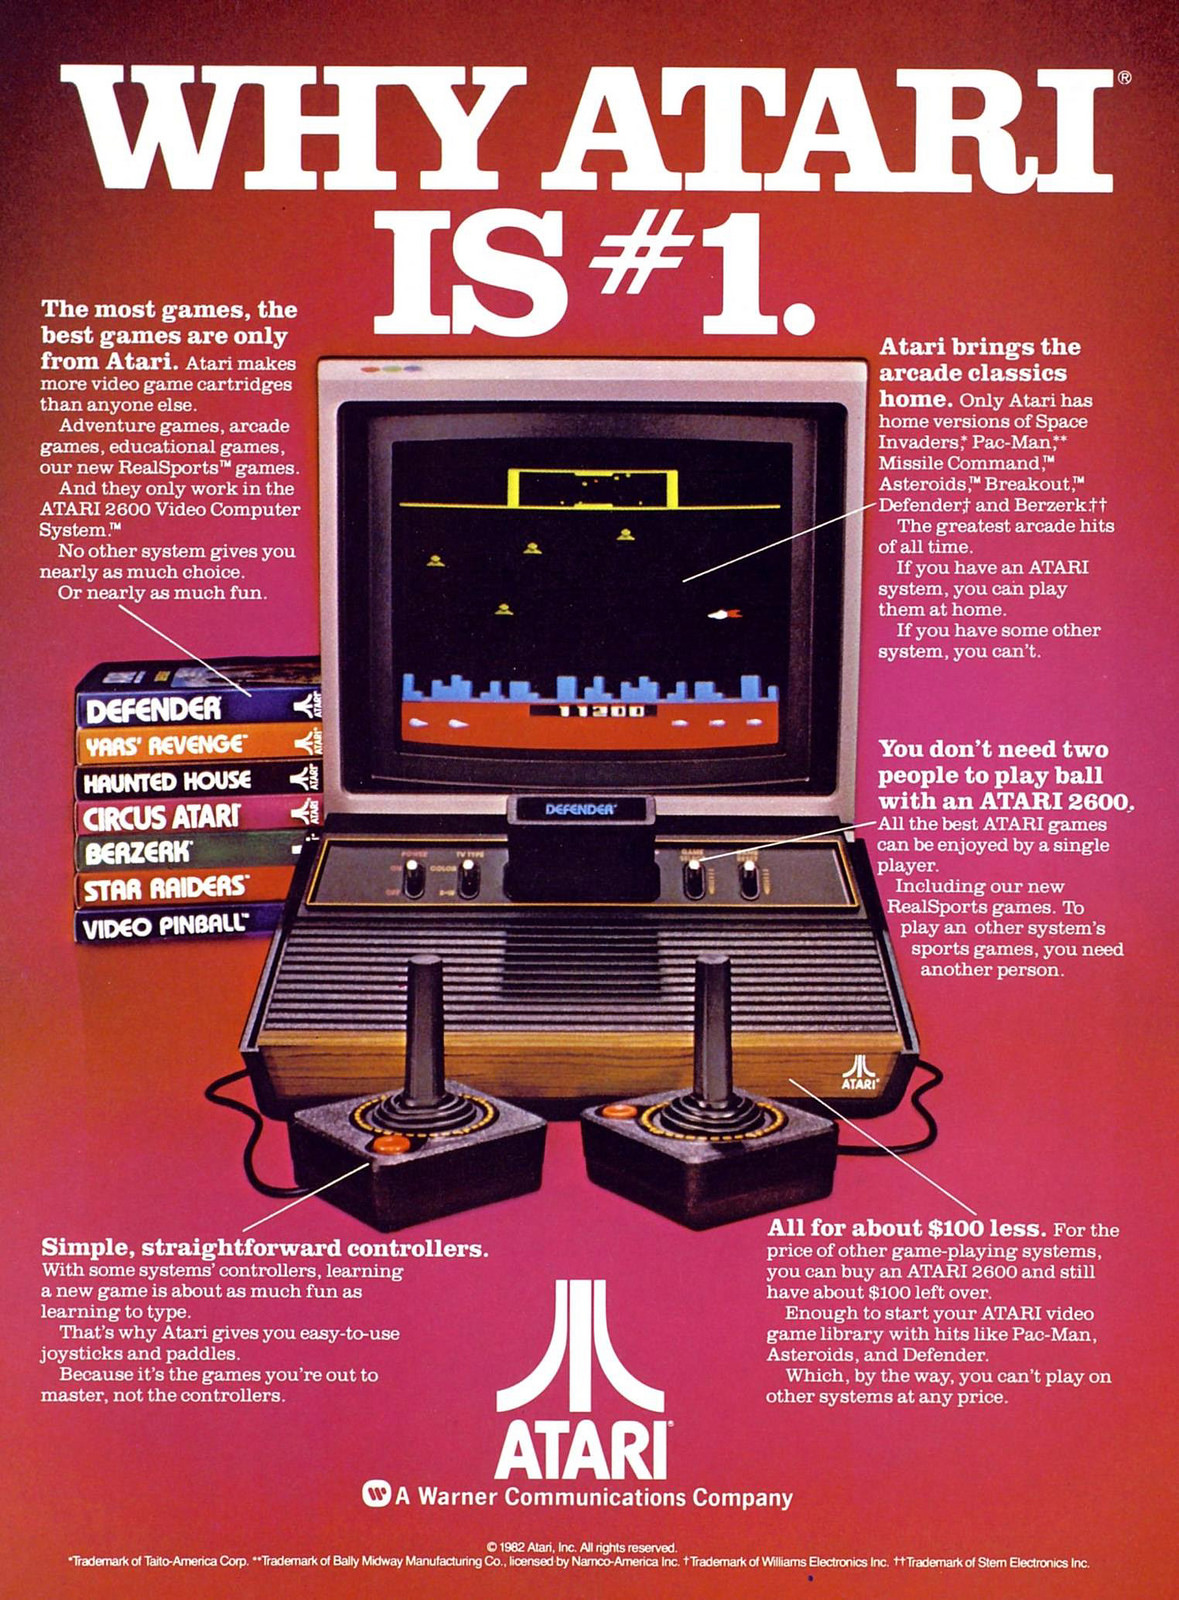 A 1982 advertisement for the Atari 2600 Video Computer. The first commercially successful home video game console, it took interchangeable game cartridges and had joystick controllers.   Tod Simpson/VisualHunt  (CC BY-NC-ND 2.0)